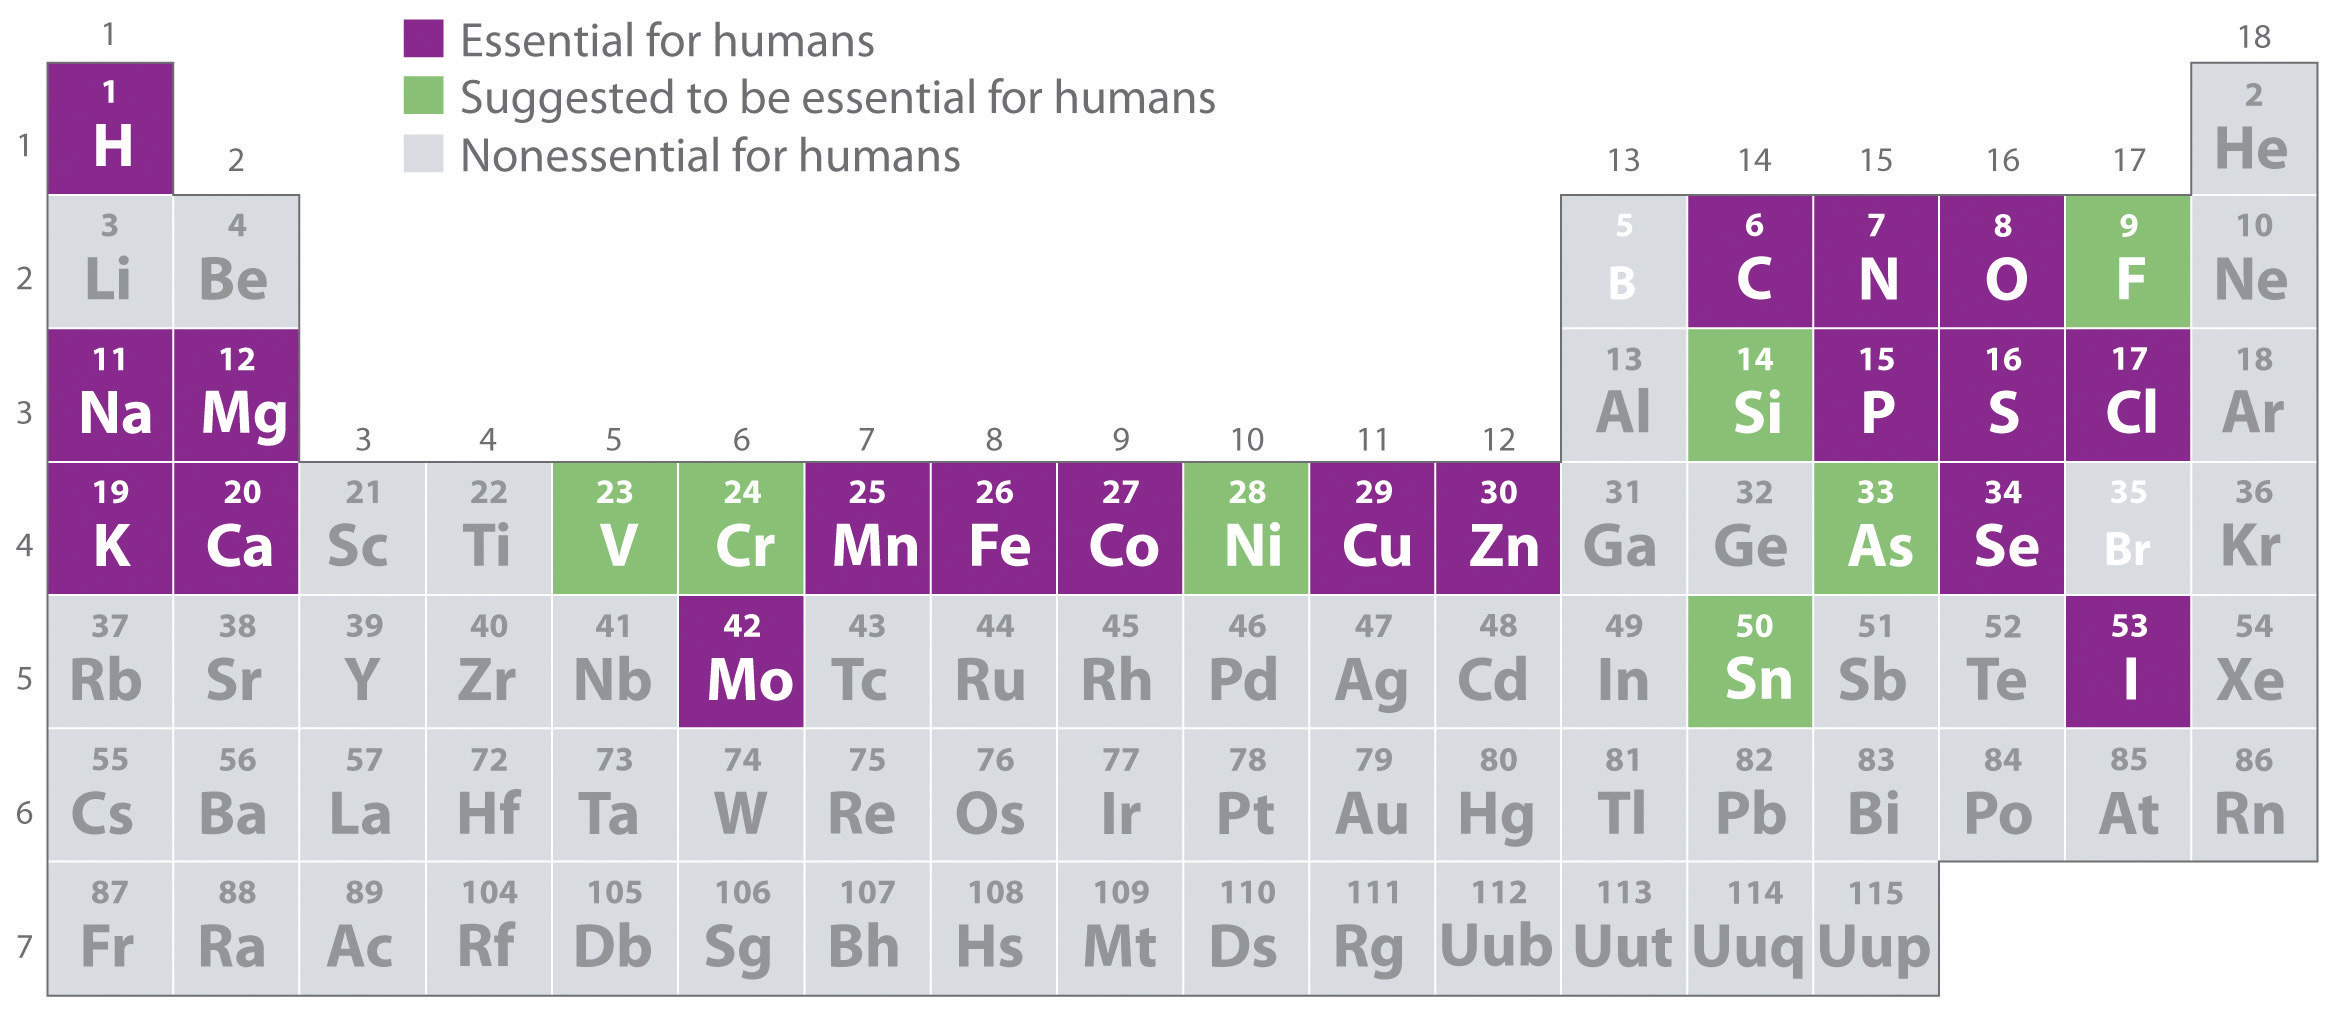 an introduction to the element calcium Element sulfur (s), group 16, atomic number 16, p-block, mass 3206 sources, facts, uses, scarcity (sri), podcasts, alchemical symbols, videos and images.